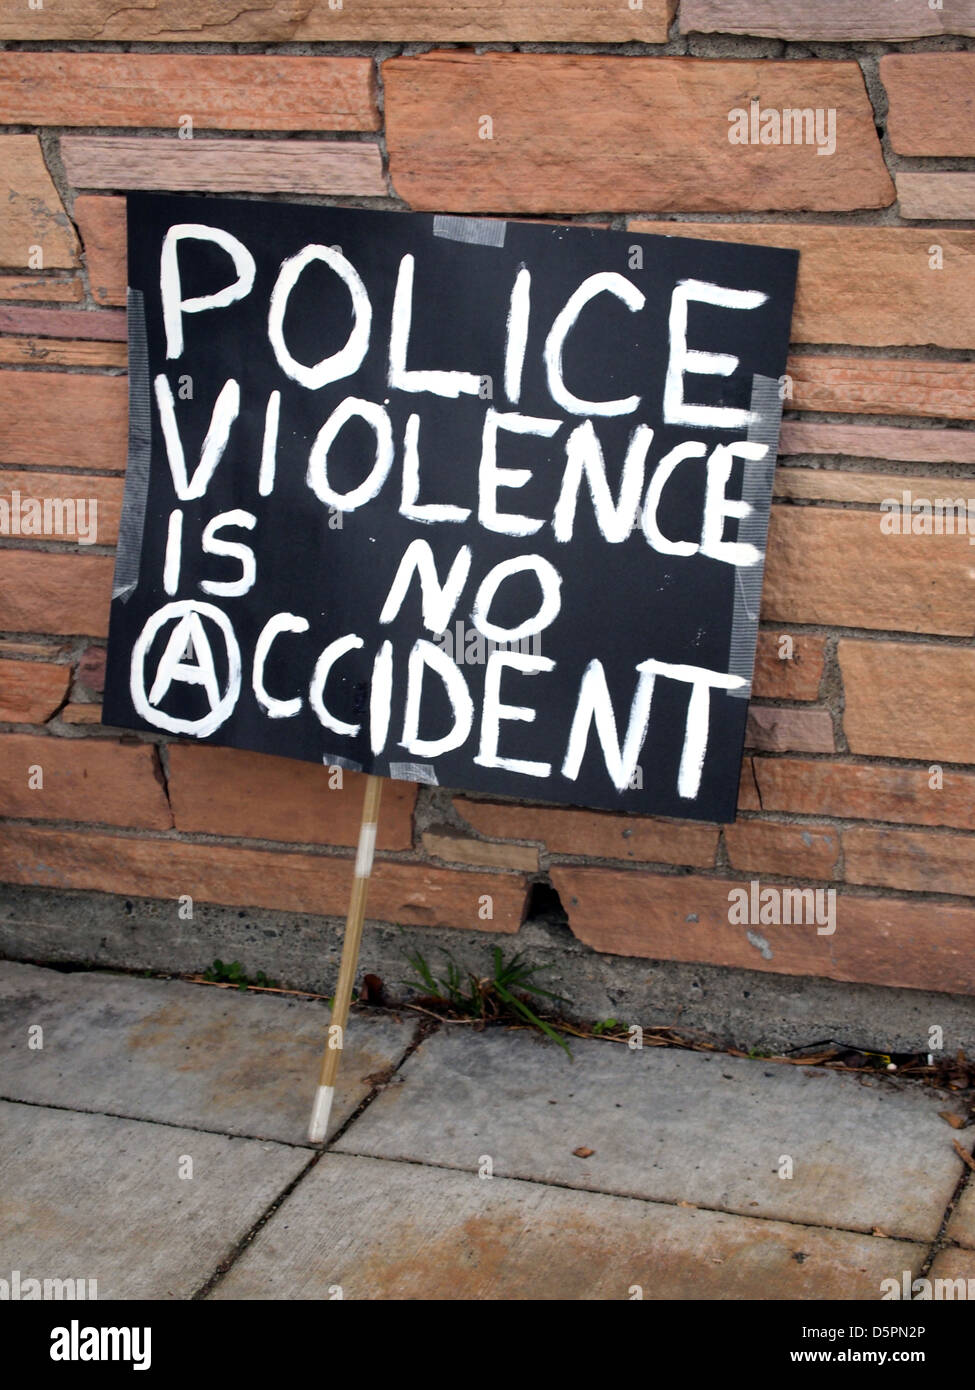 Police violence is no accident anti-police sign at demonstration in Seattle, Washington, USA - Stock Image